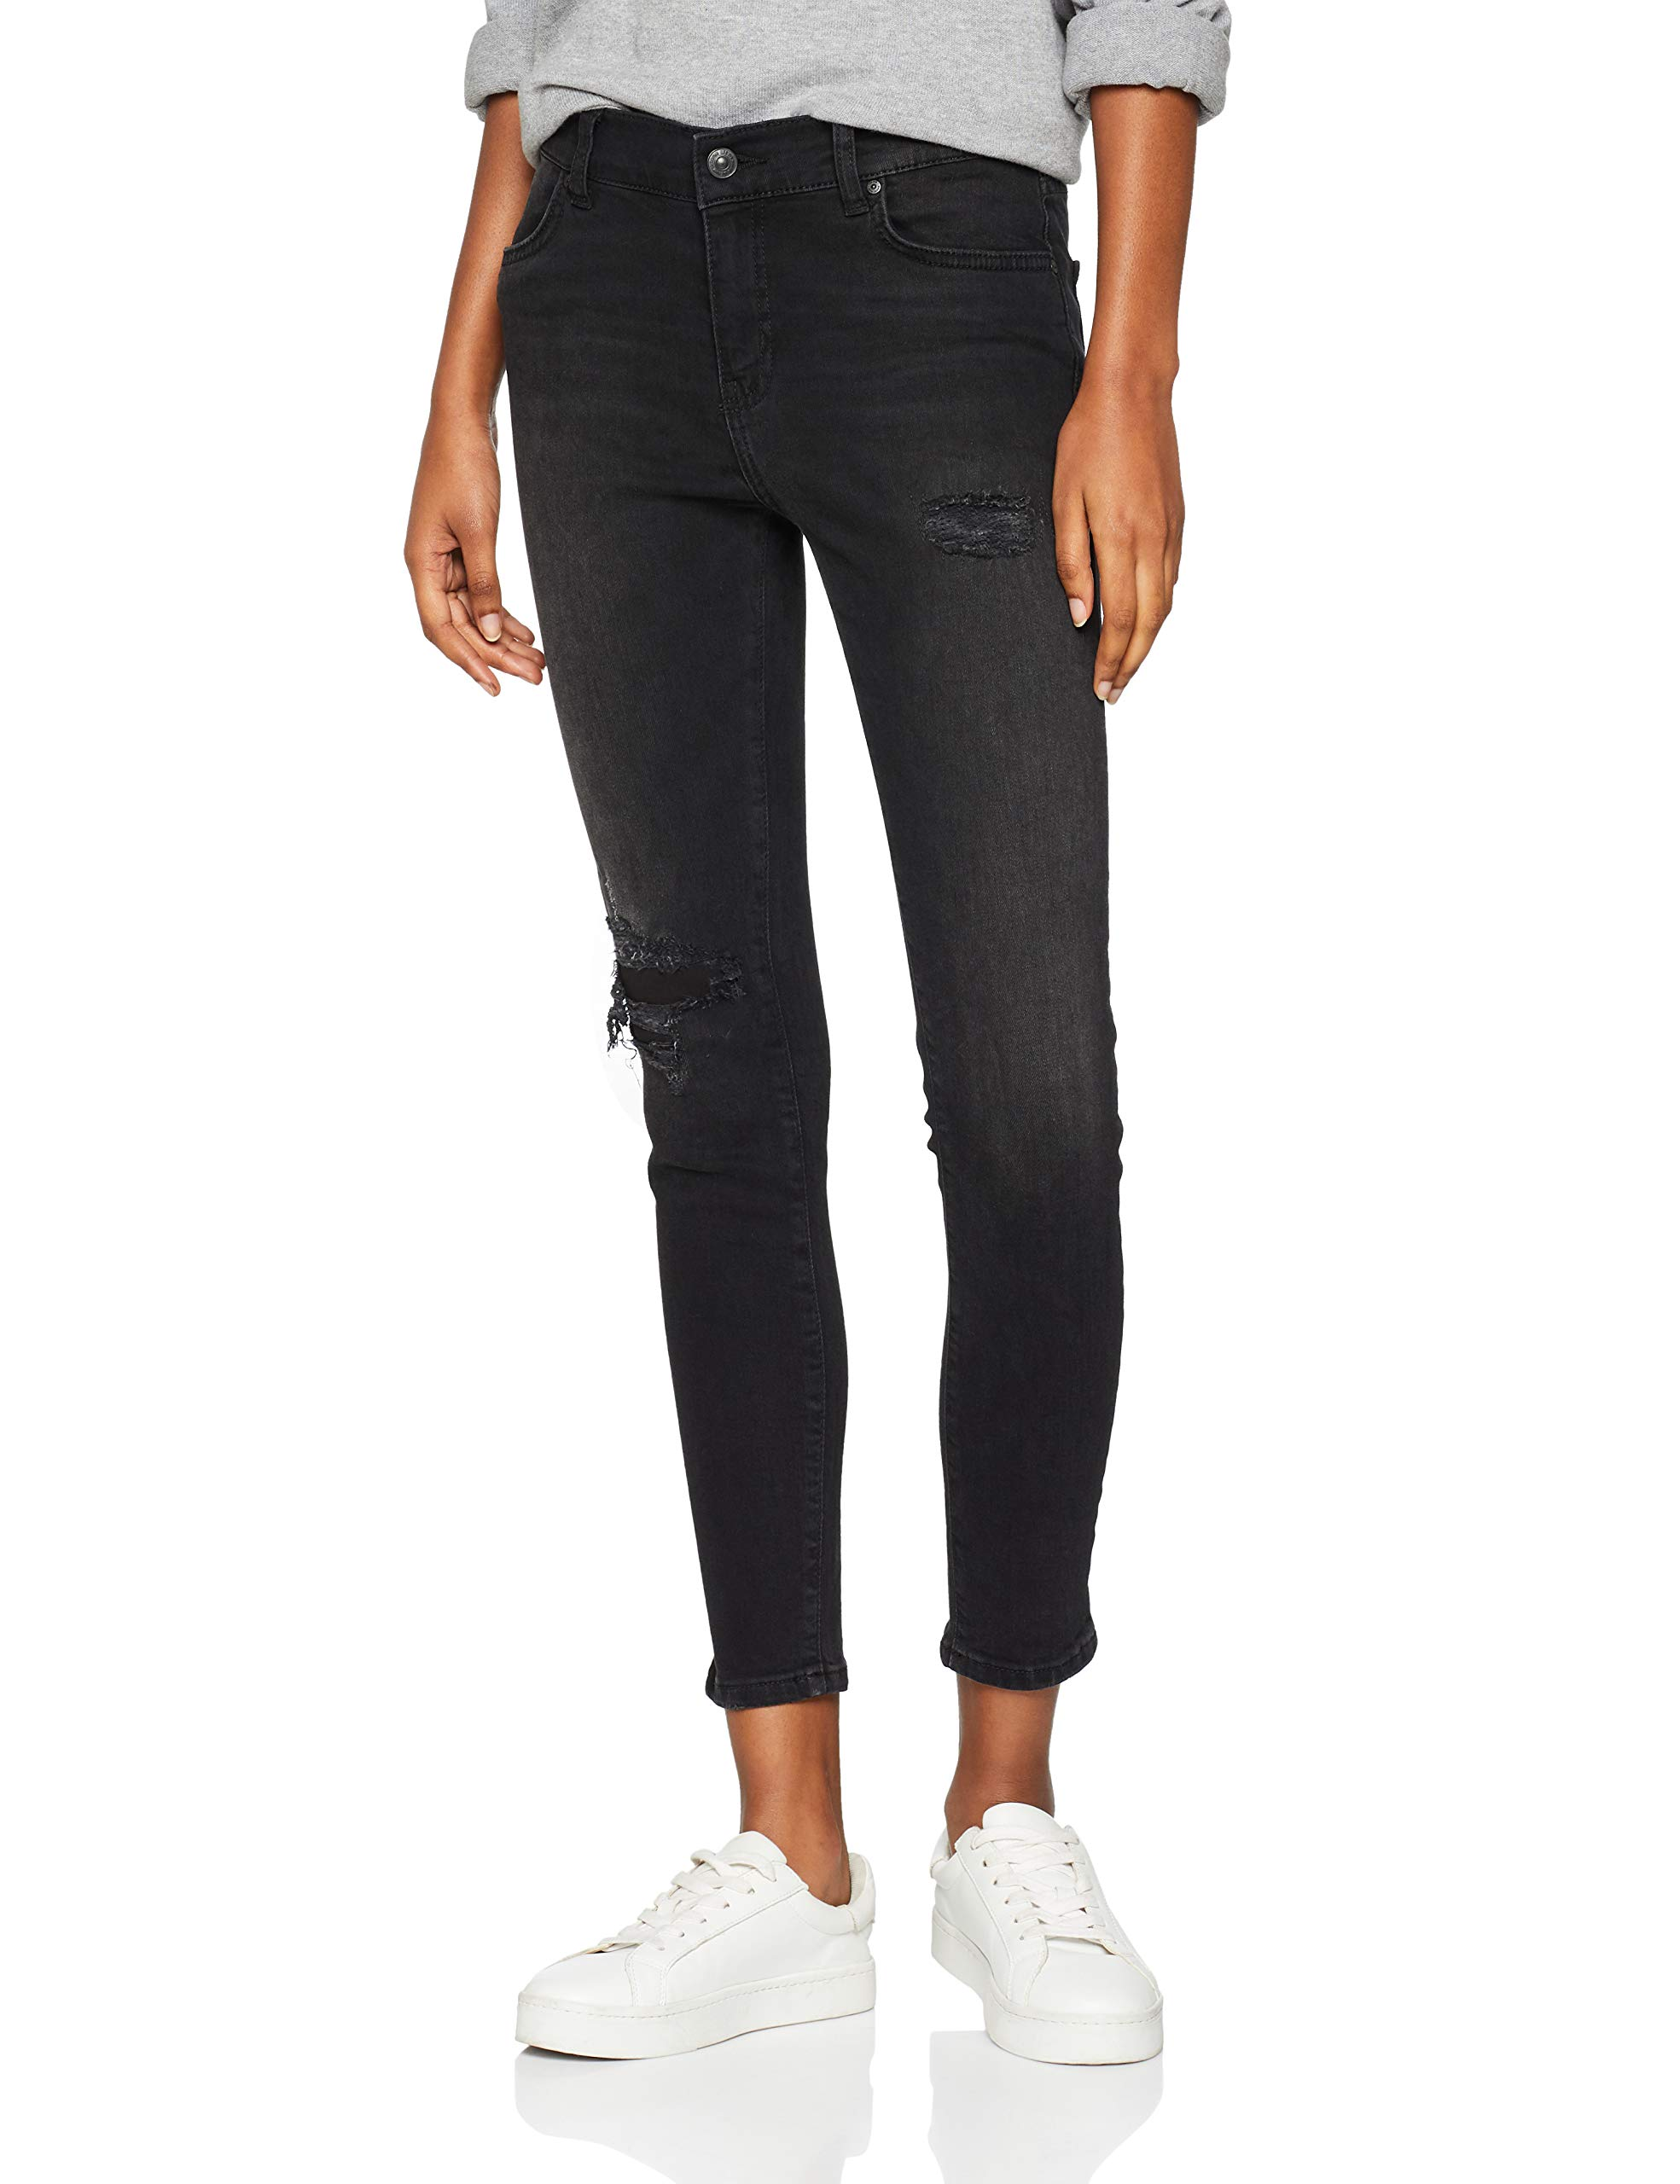 Femme Ltb Lonia Jean Jeans Wash SkinnyNoirmaidu Du 51237Taille Fabricant27 CrxodBe